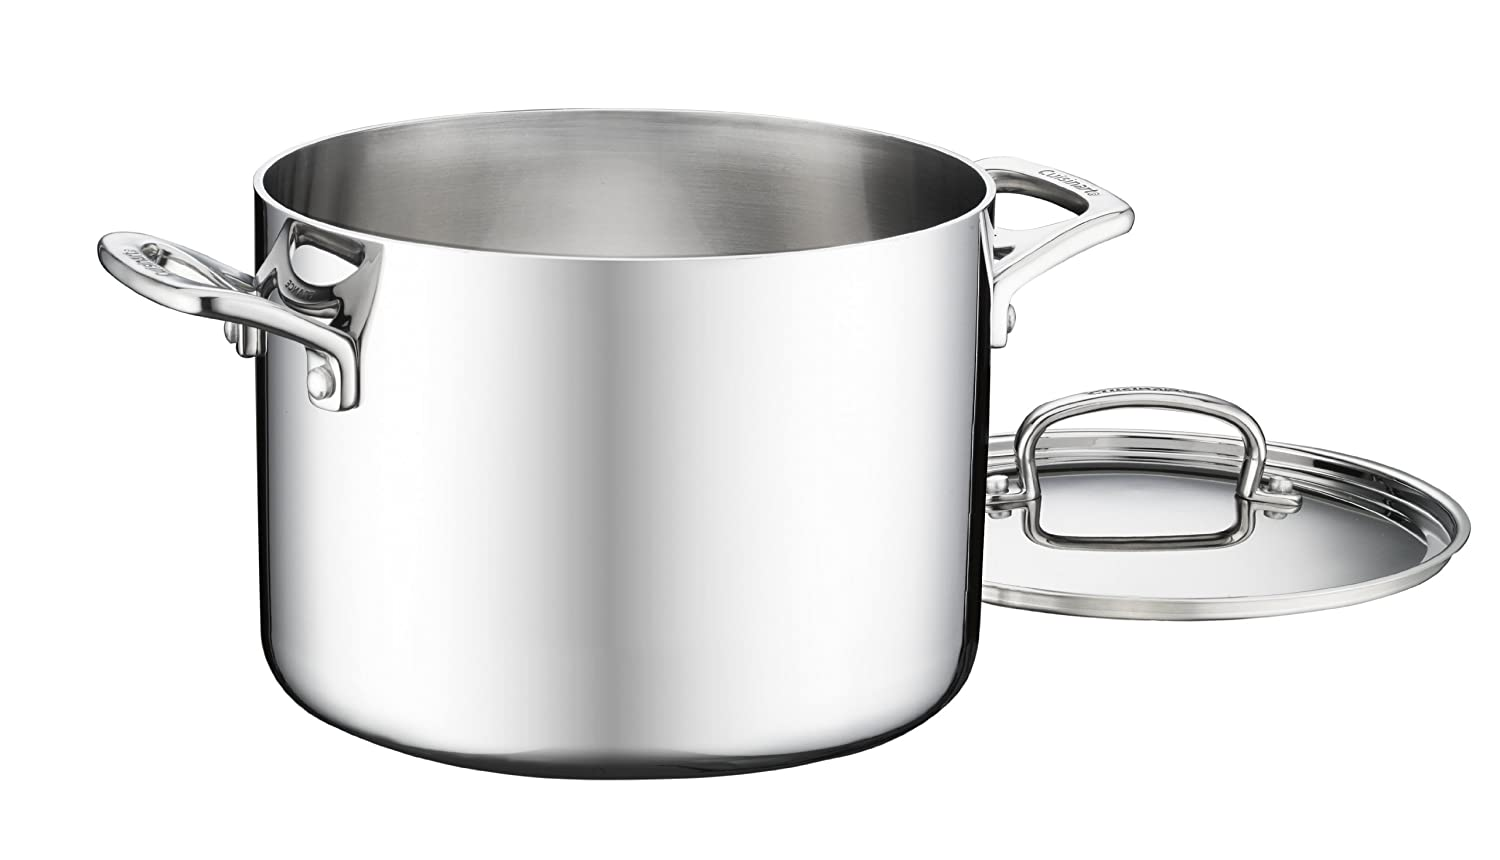 6-Quart Cuisinart FCT1113-18 French Classic Tri-Ply Stainless 3-Piece Saucepan and Double Boiler Set